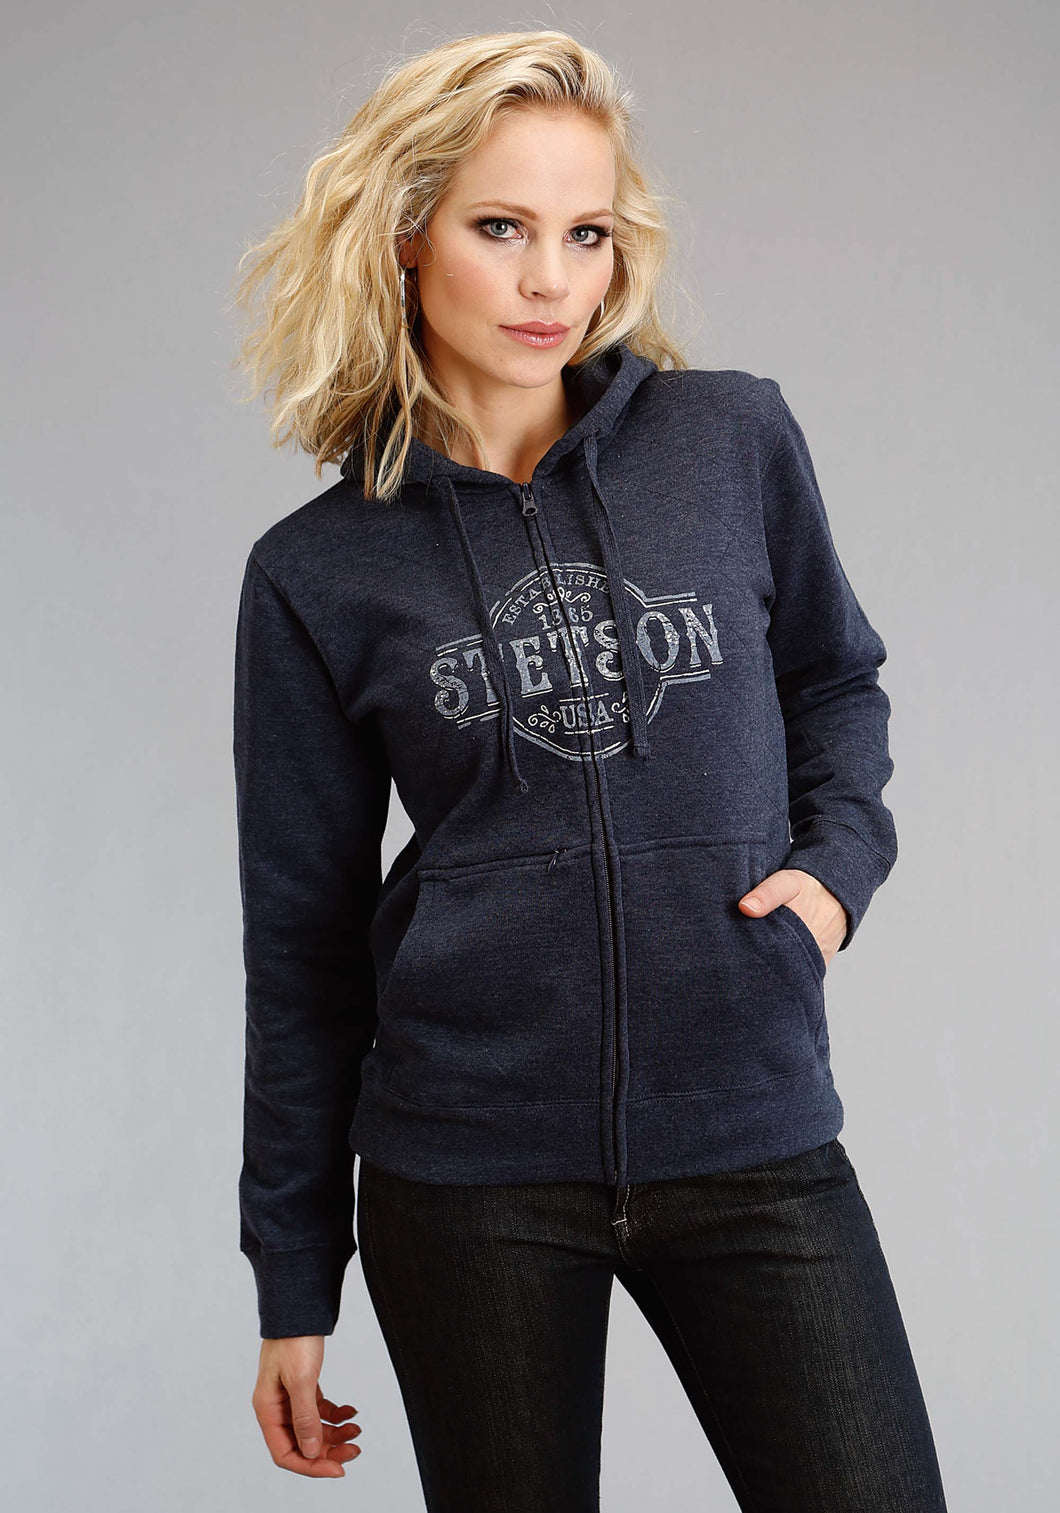 Stetson Ladies Collection- Sweatshirt Stetson Womens Sweatshirt Steson Seal Applipque Embroidery